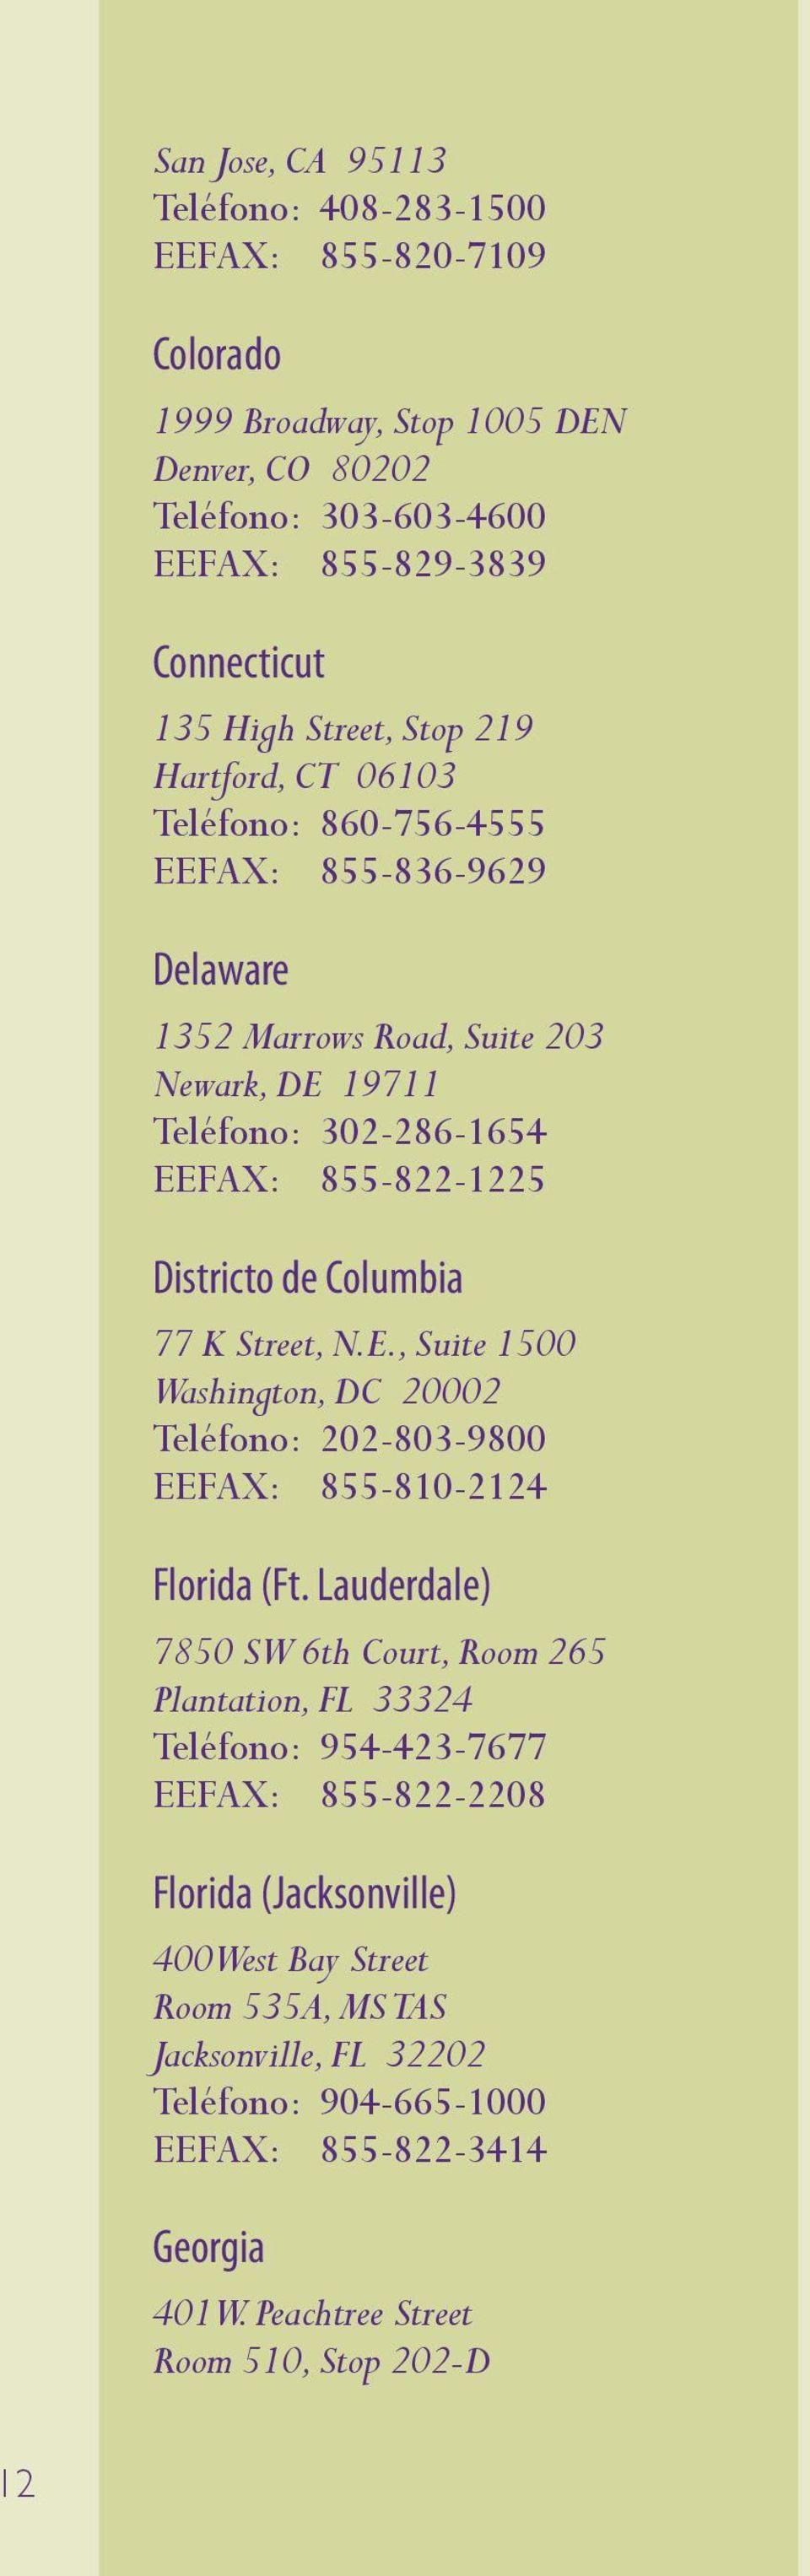 Street, N.E., Suite 1500 Washington, DC 20002 Teléfono: 202-803-9800 EEFAX: 855-810-2124 Florida (Ft.